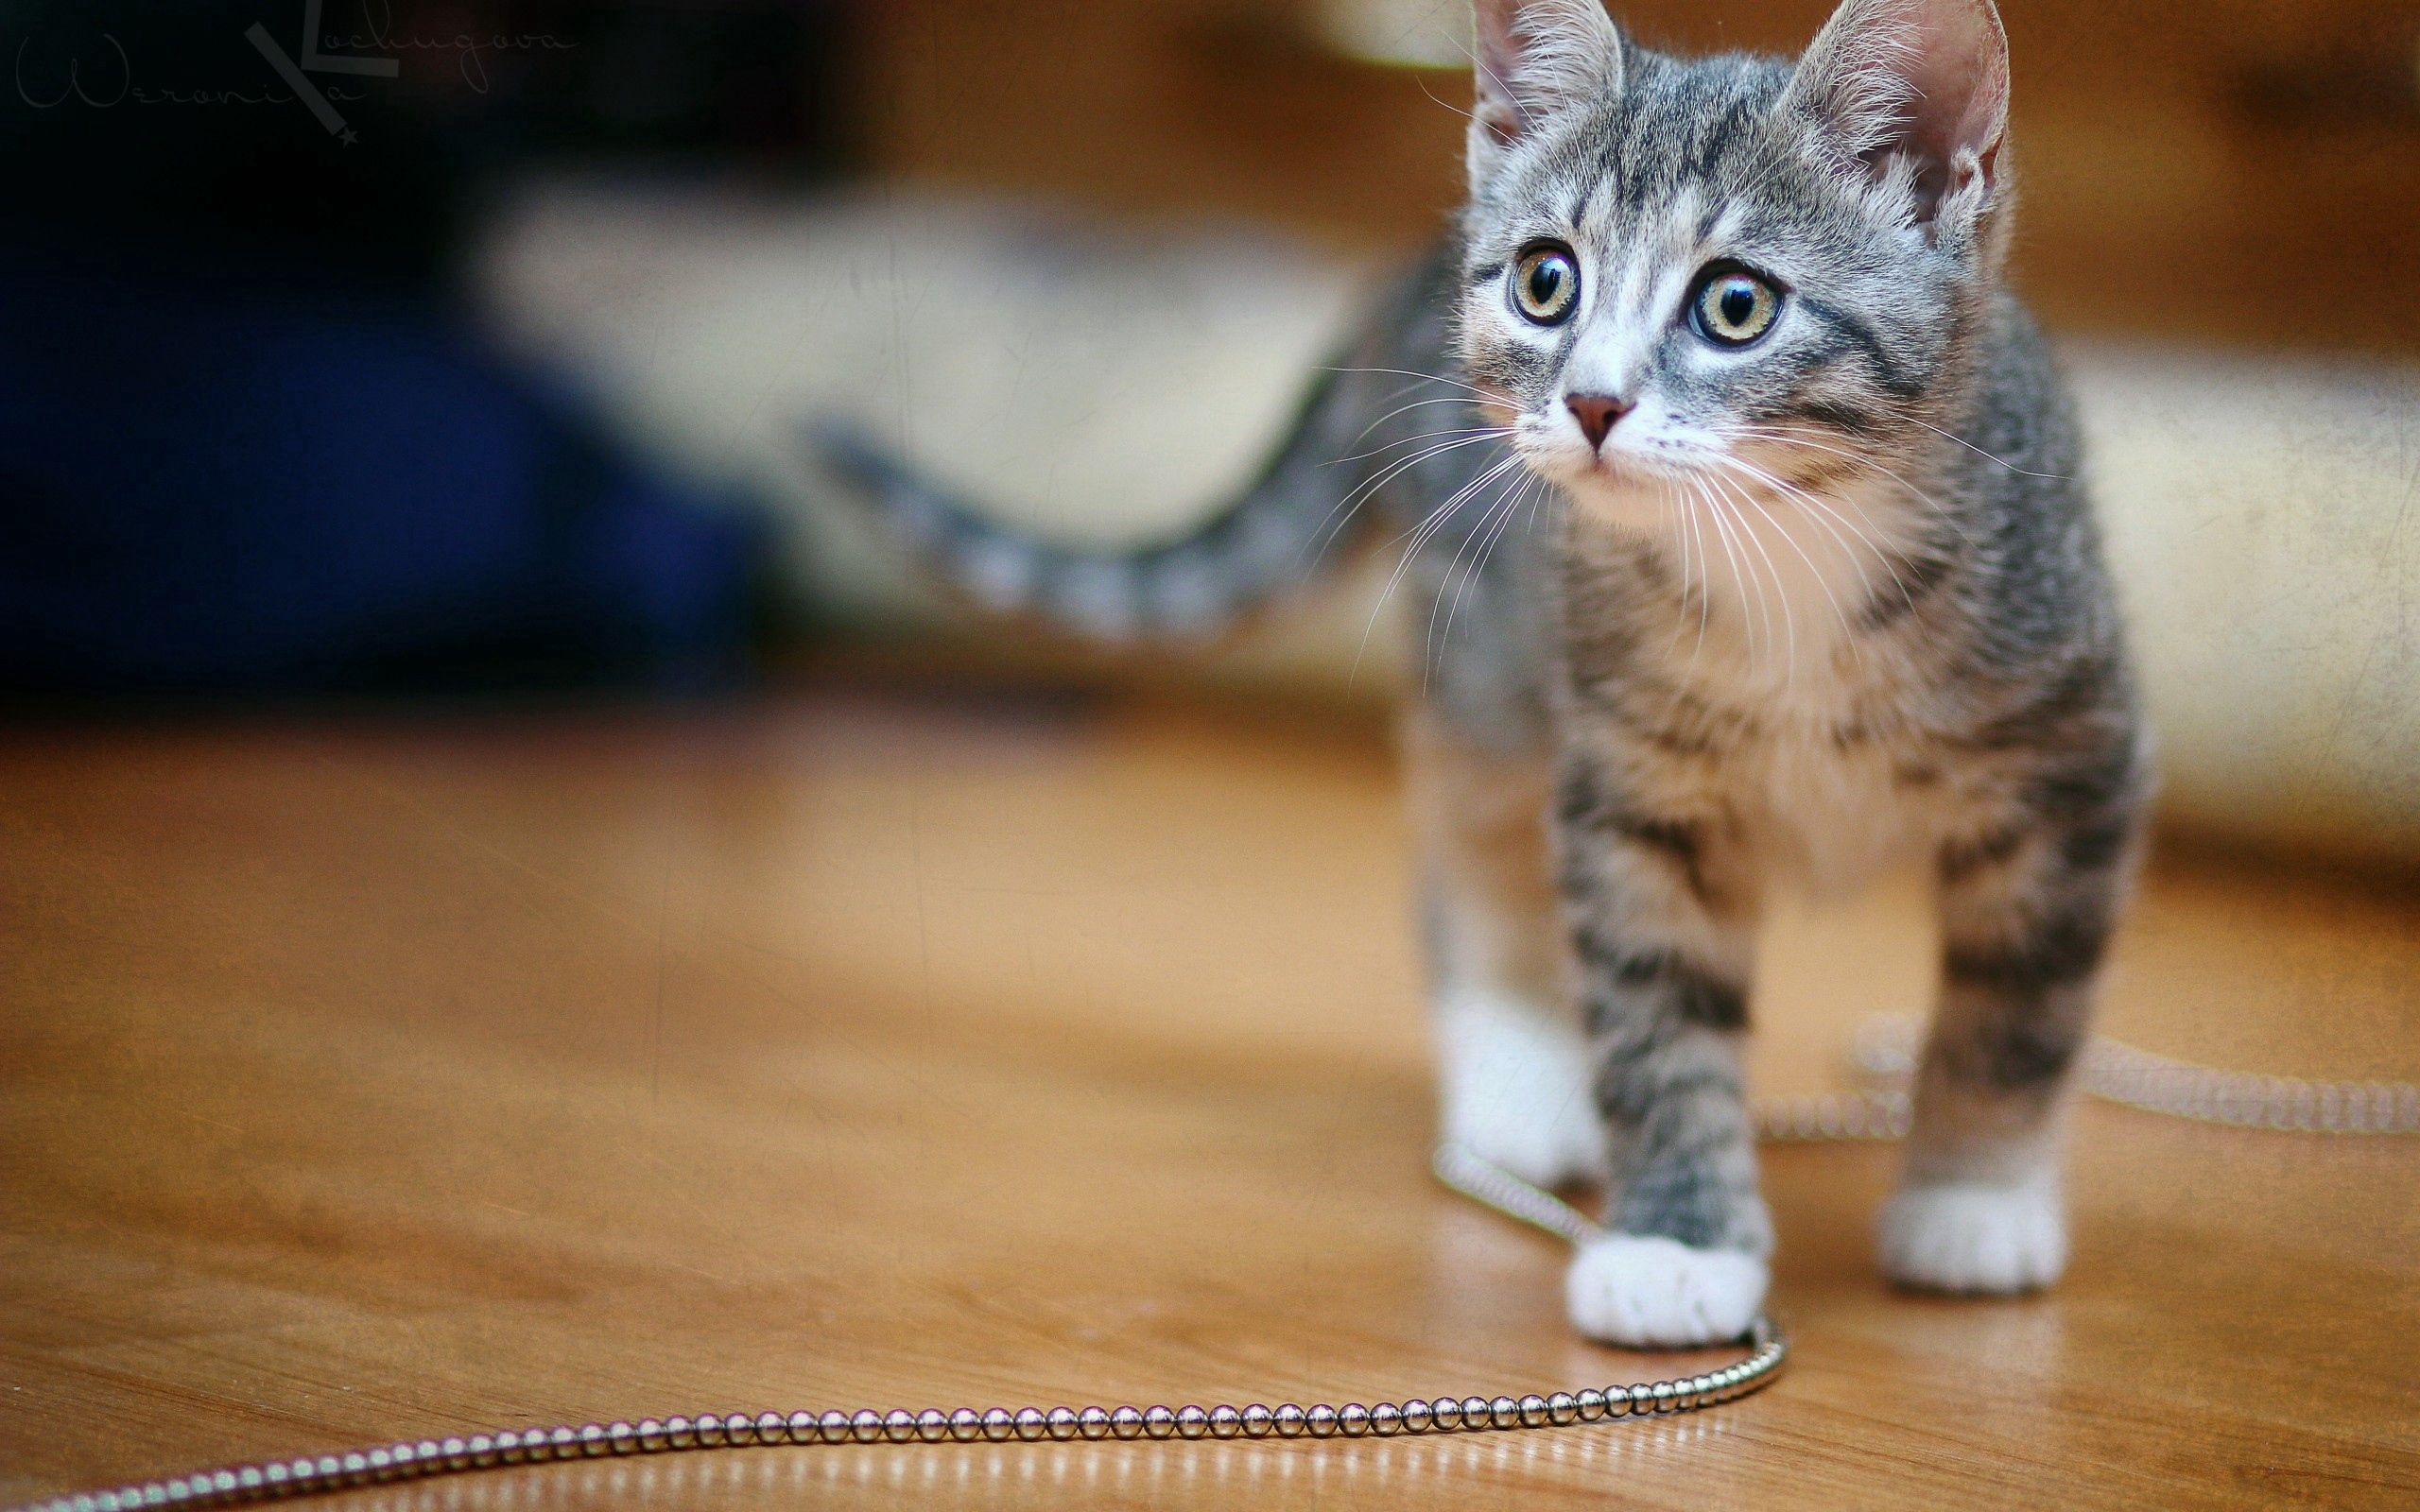 94872 download wallpaper Animals, Kitty, Kitten, Chain, Spotted, Spotty screensavers and pictures for free